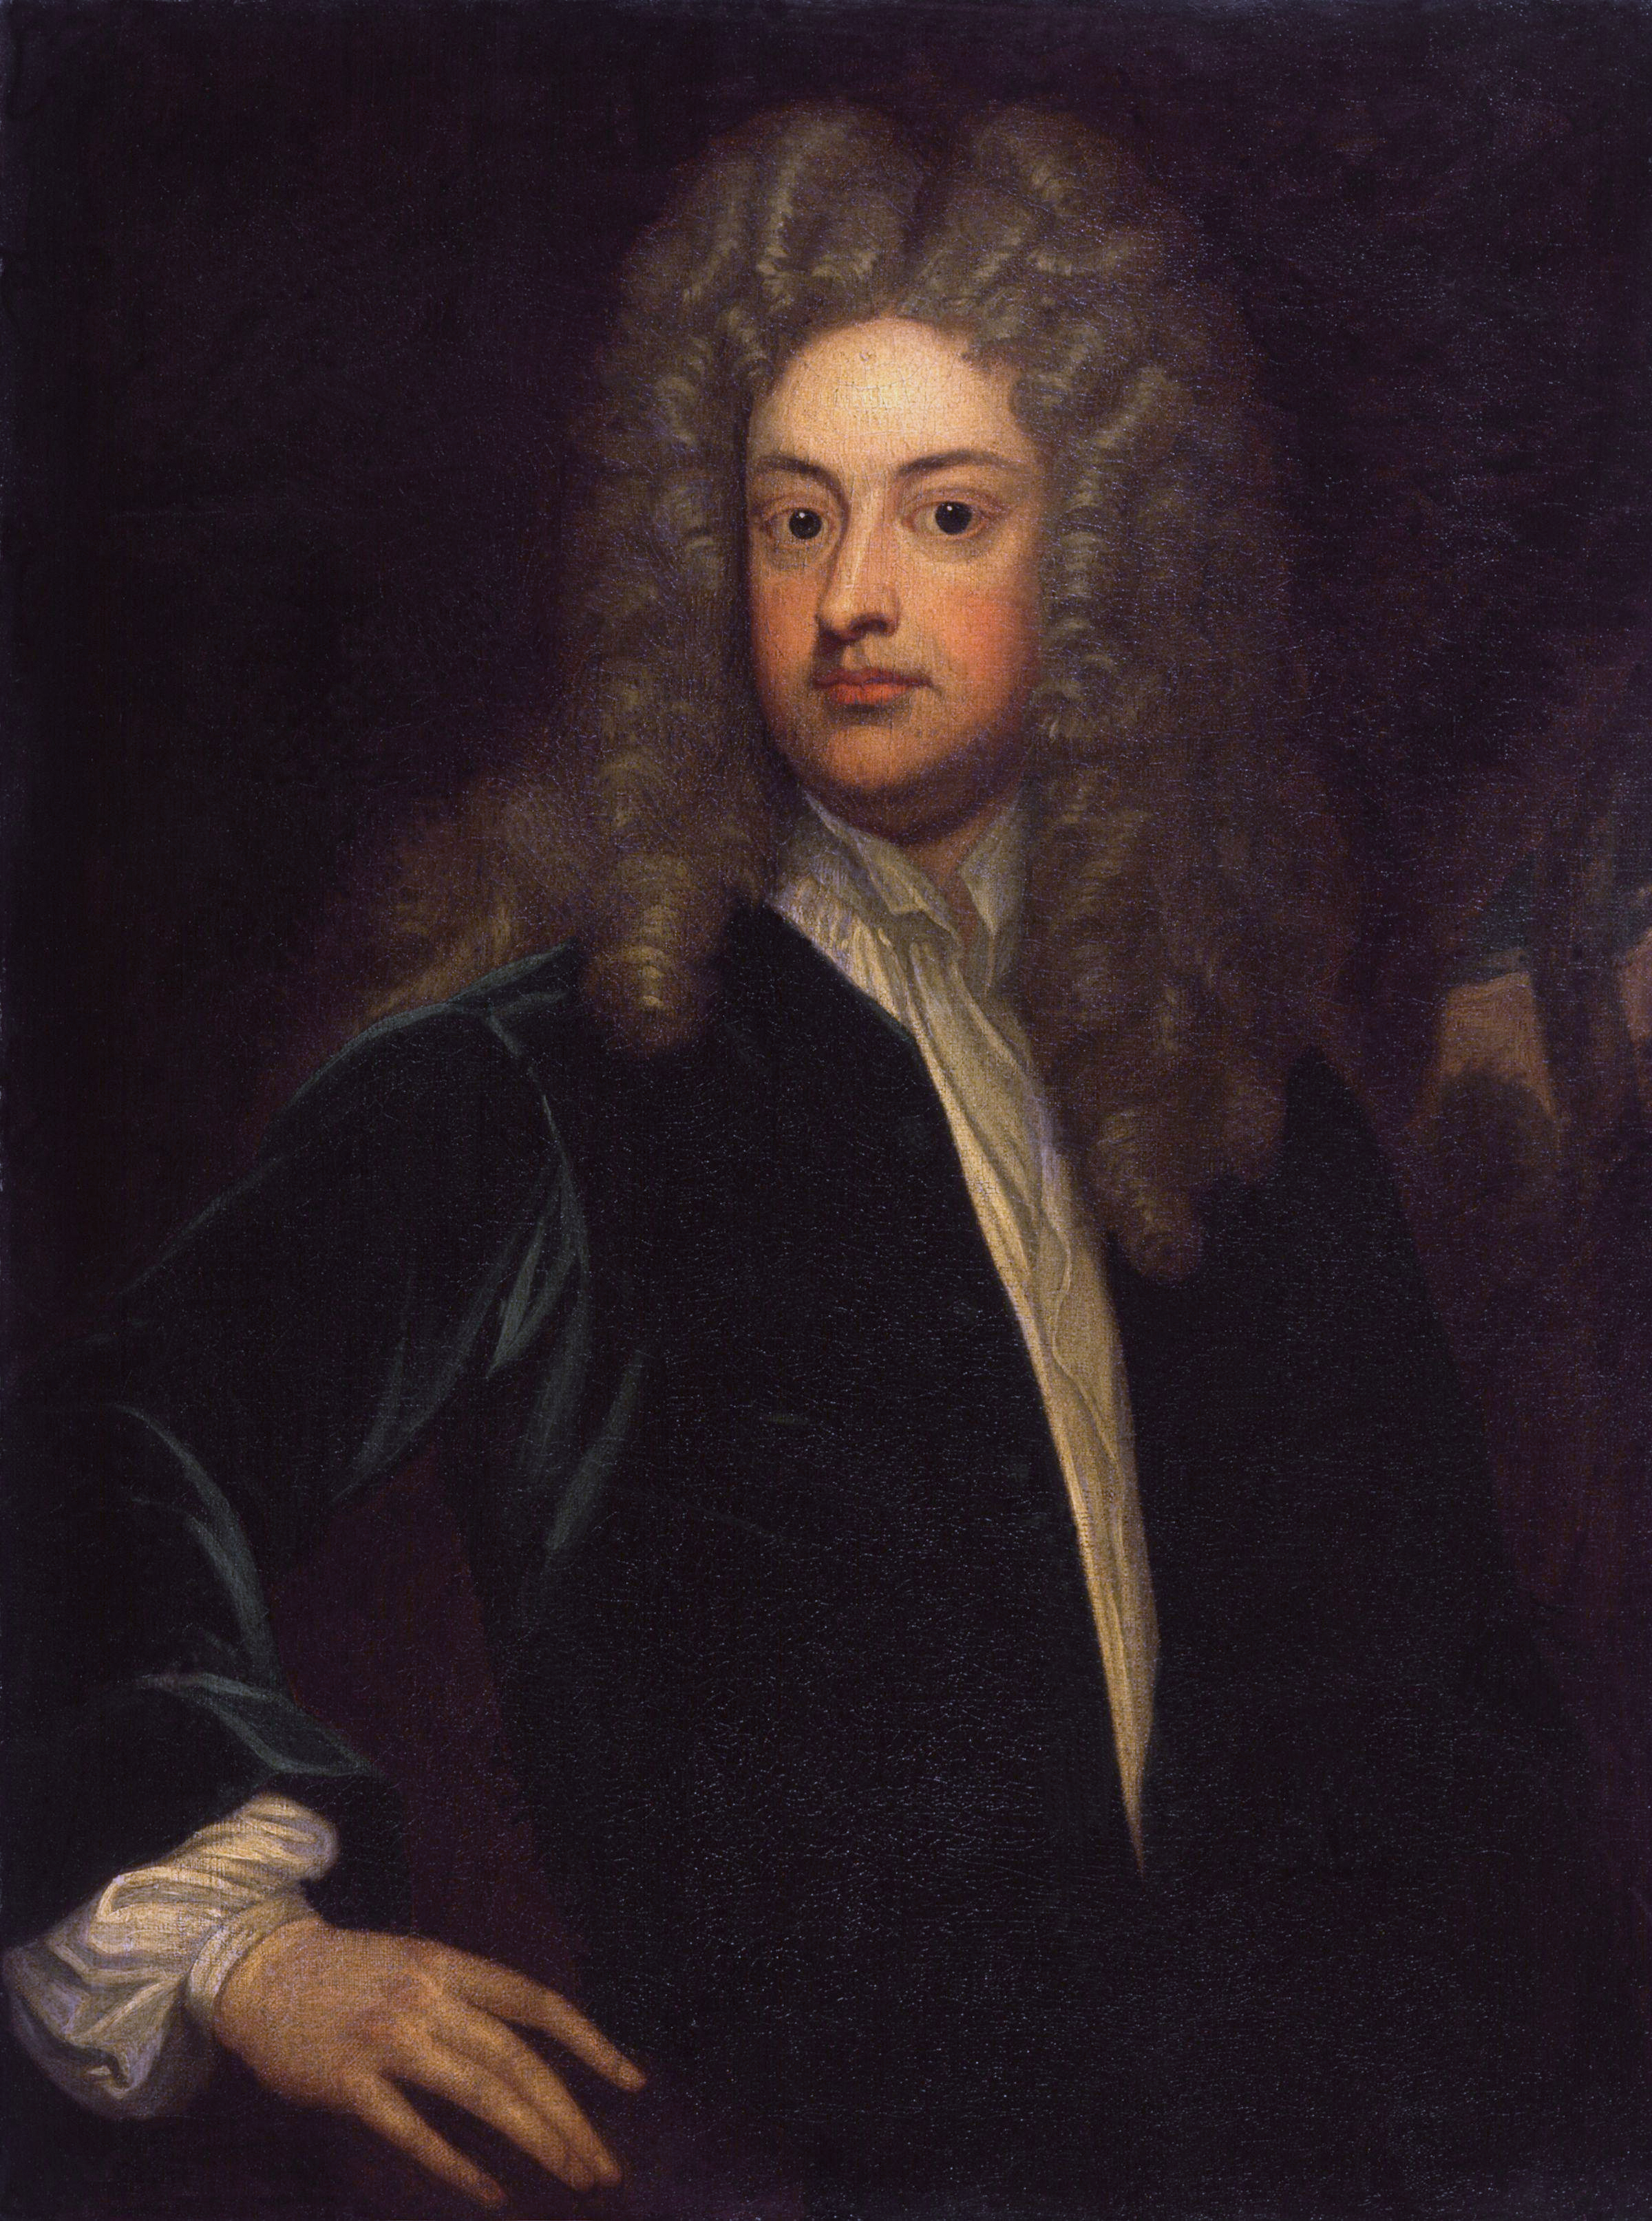 Photo of Joseph Addison